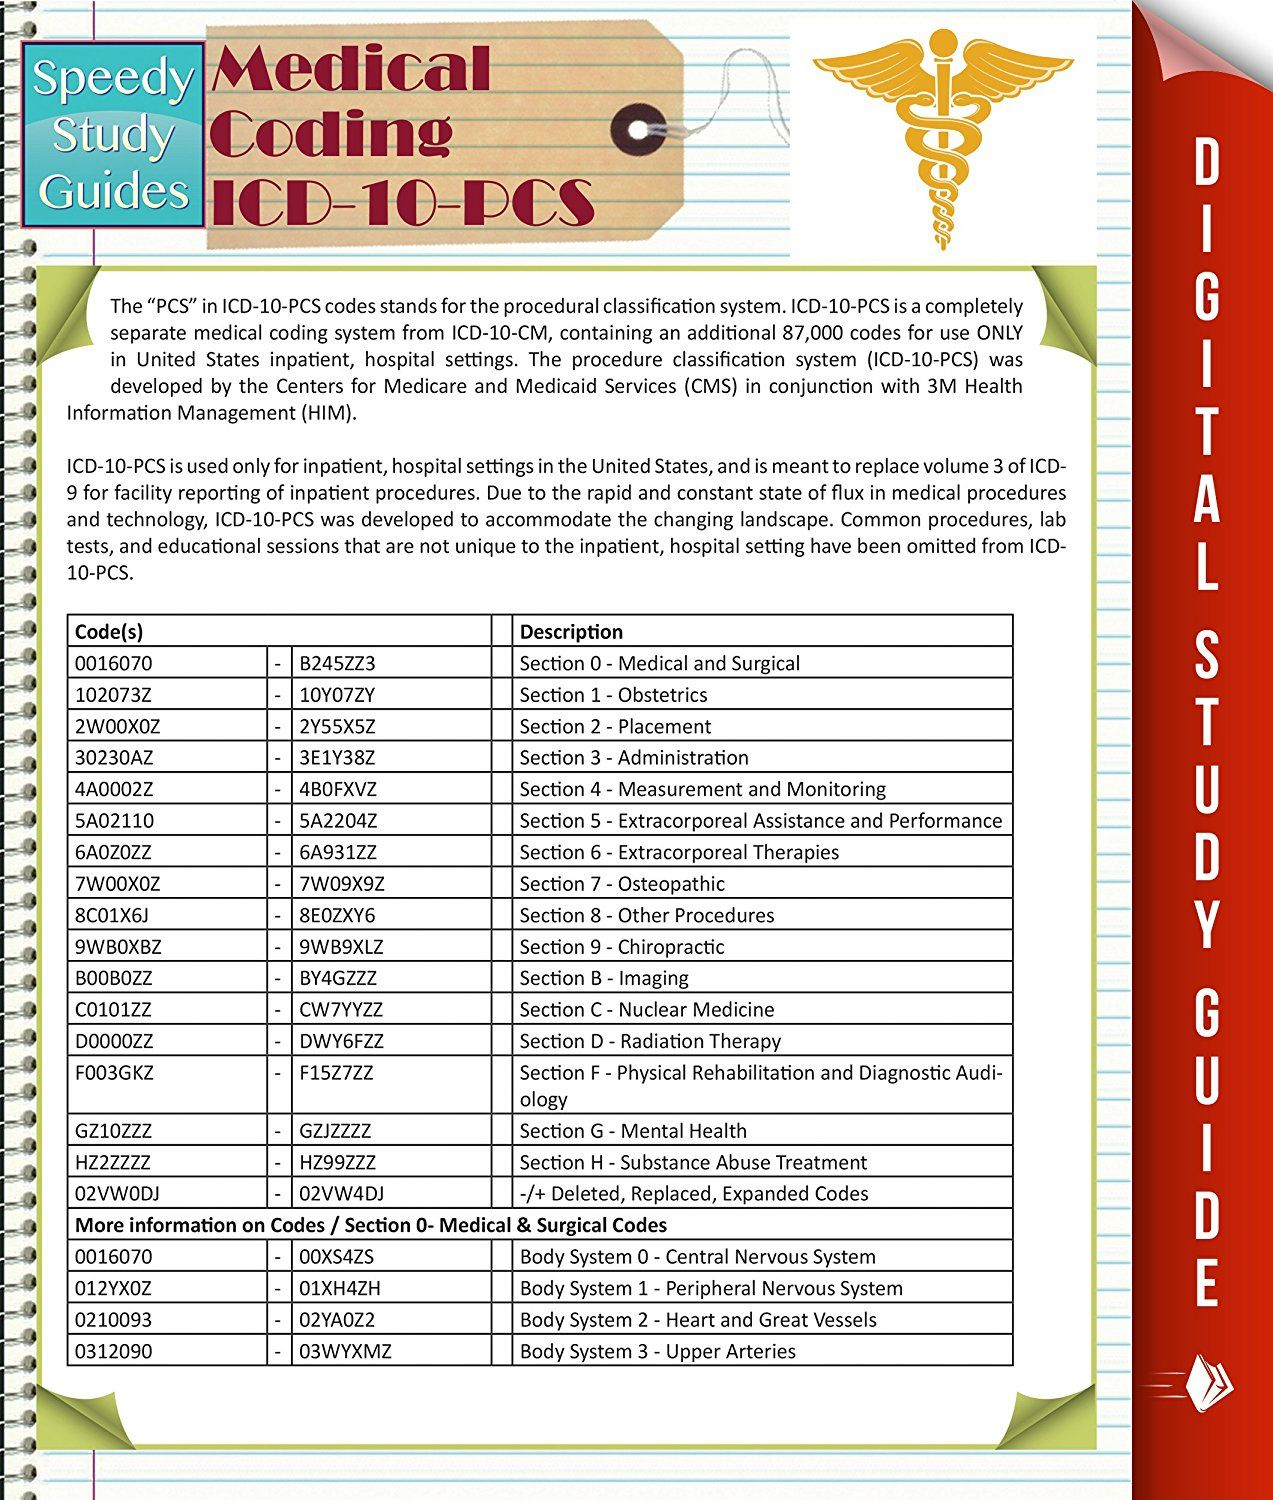 Medical Coding Icd-10-Pcs (Speedy Study Guides) | *Medical Info* FYI ...